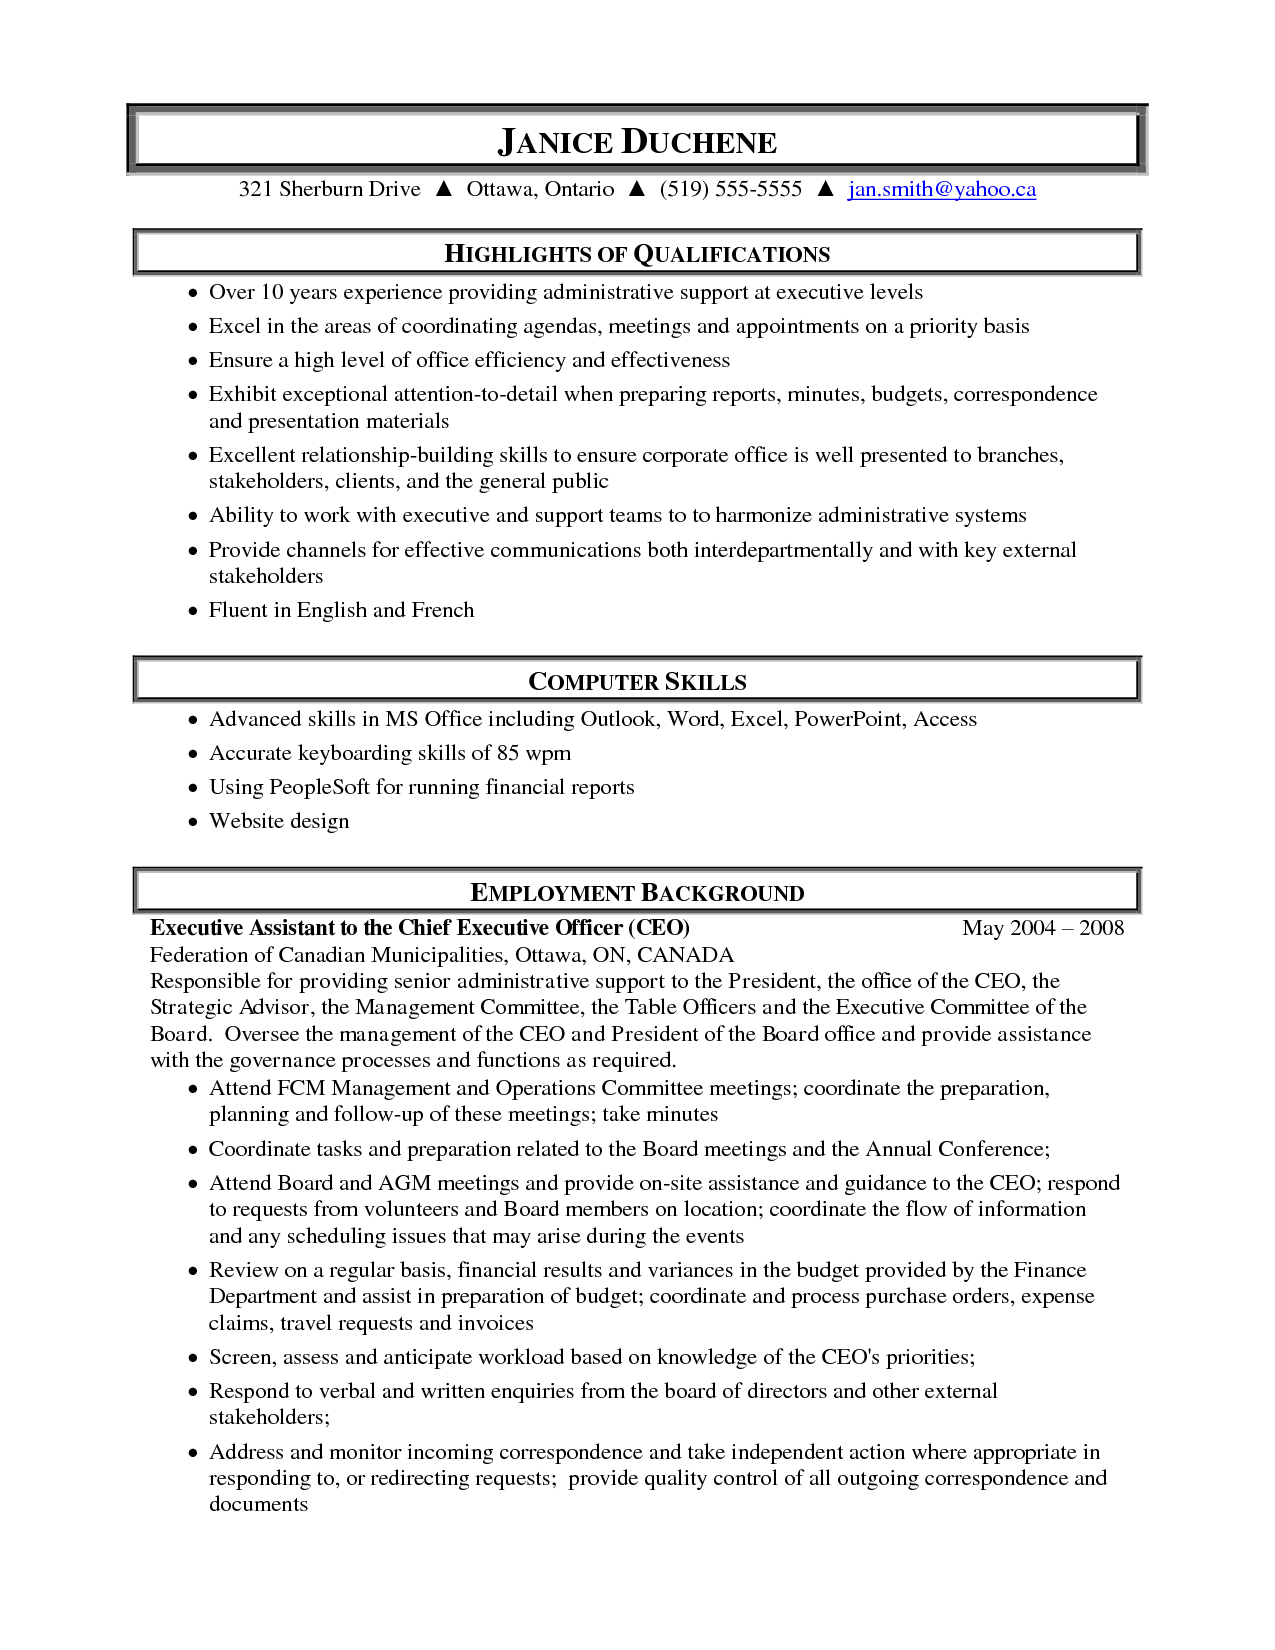 Delightful Medical Administrative Assistant Resume Samples Highlight Of Qualifications Intended Medical Office Assistant Resume Sample